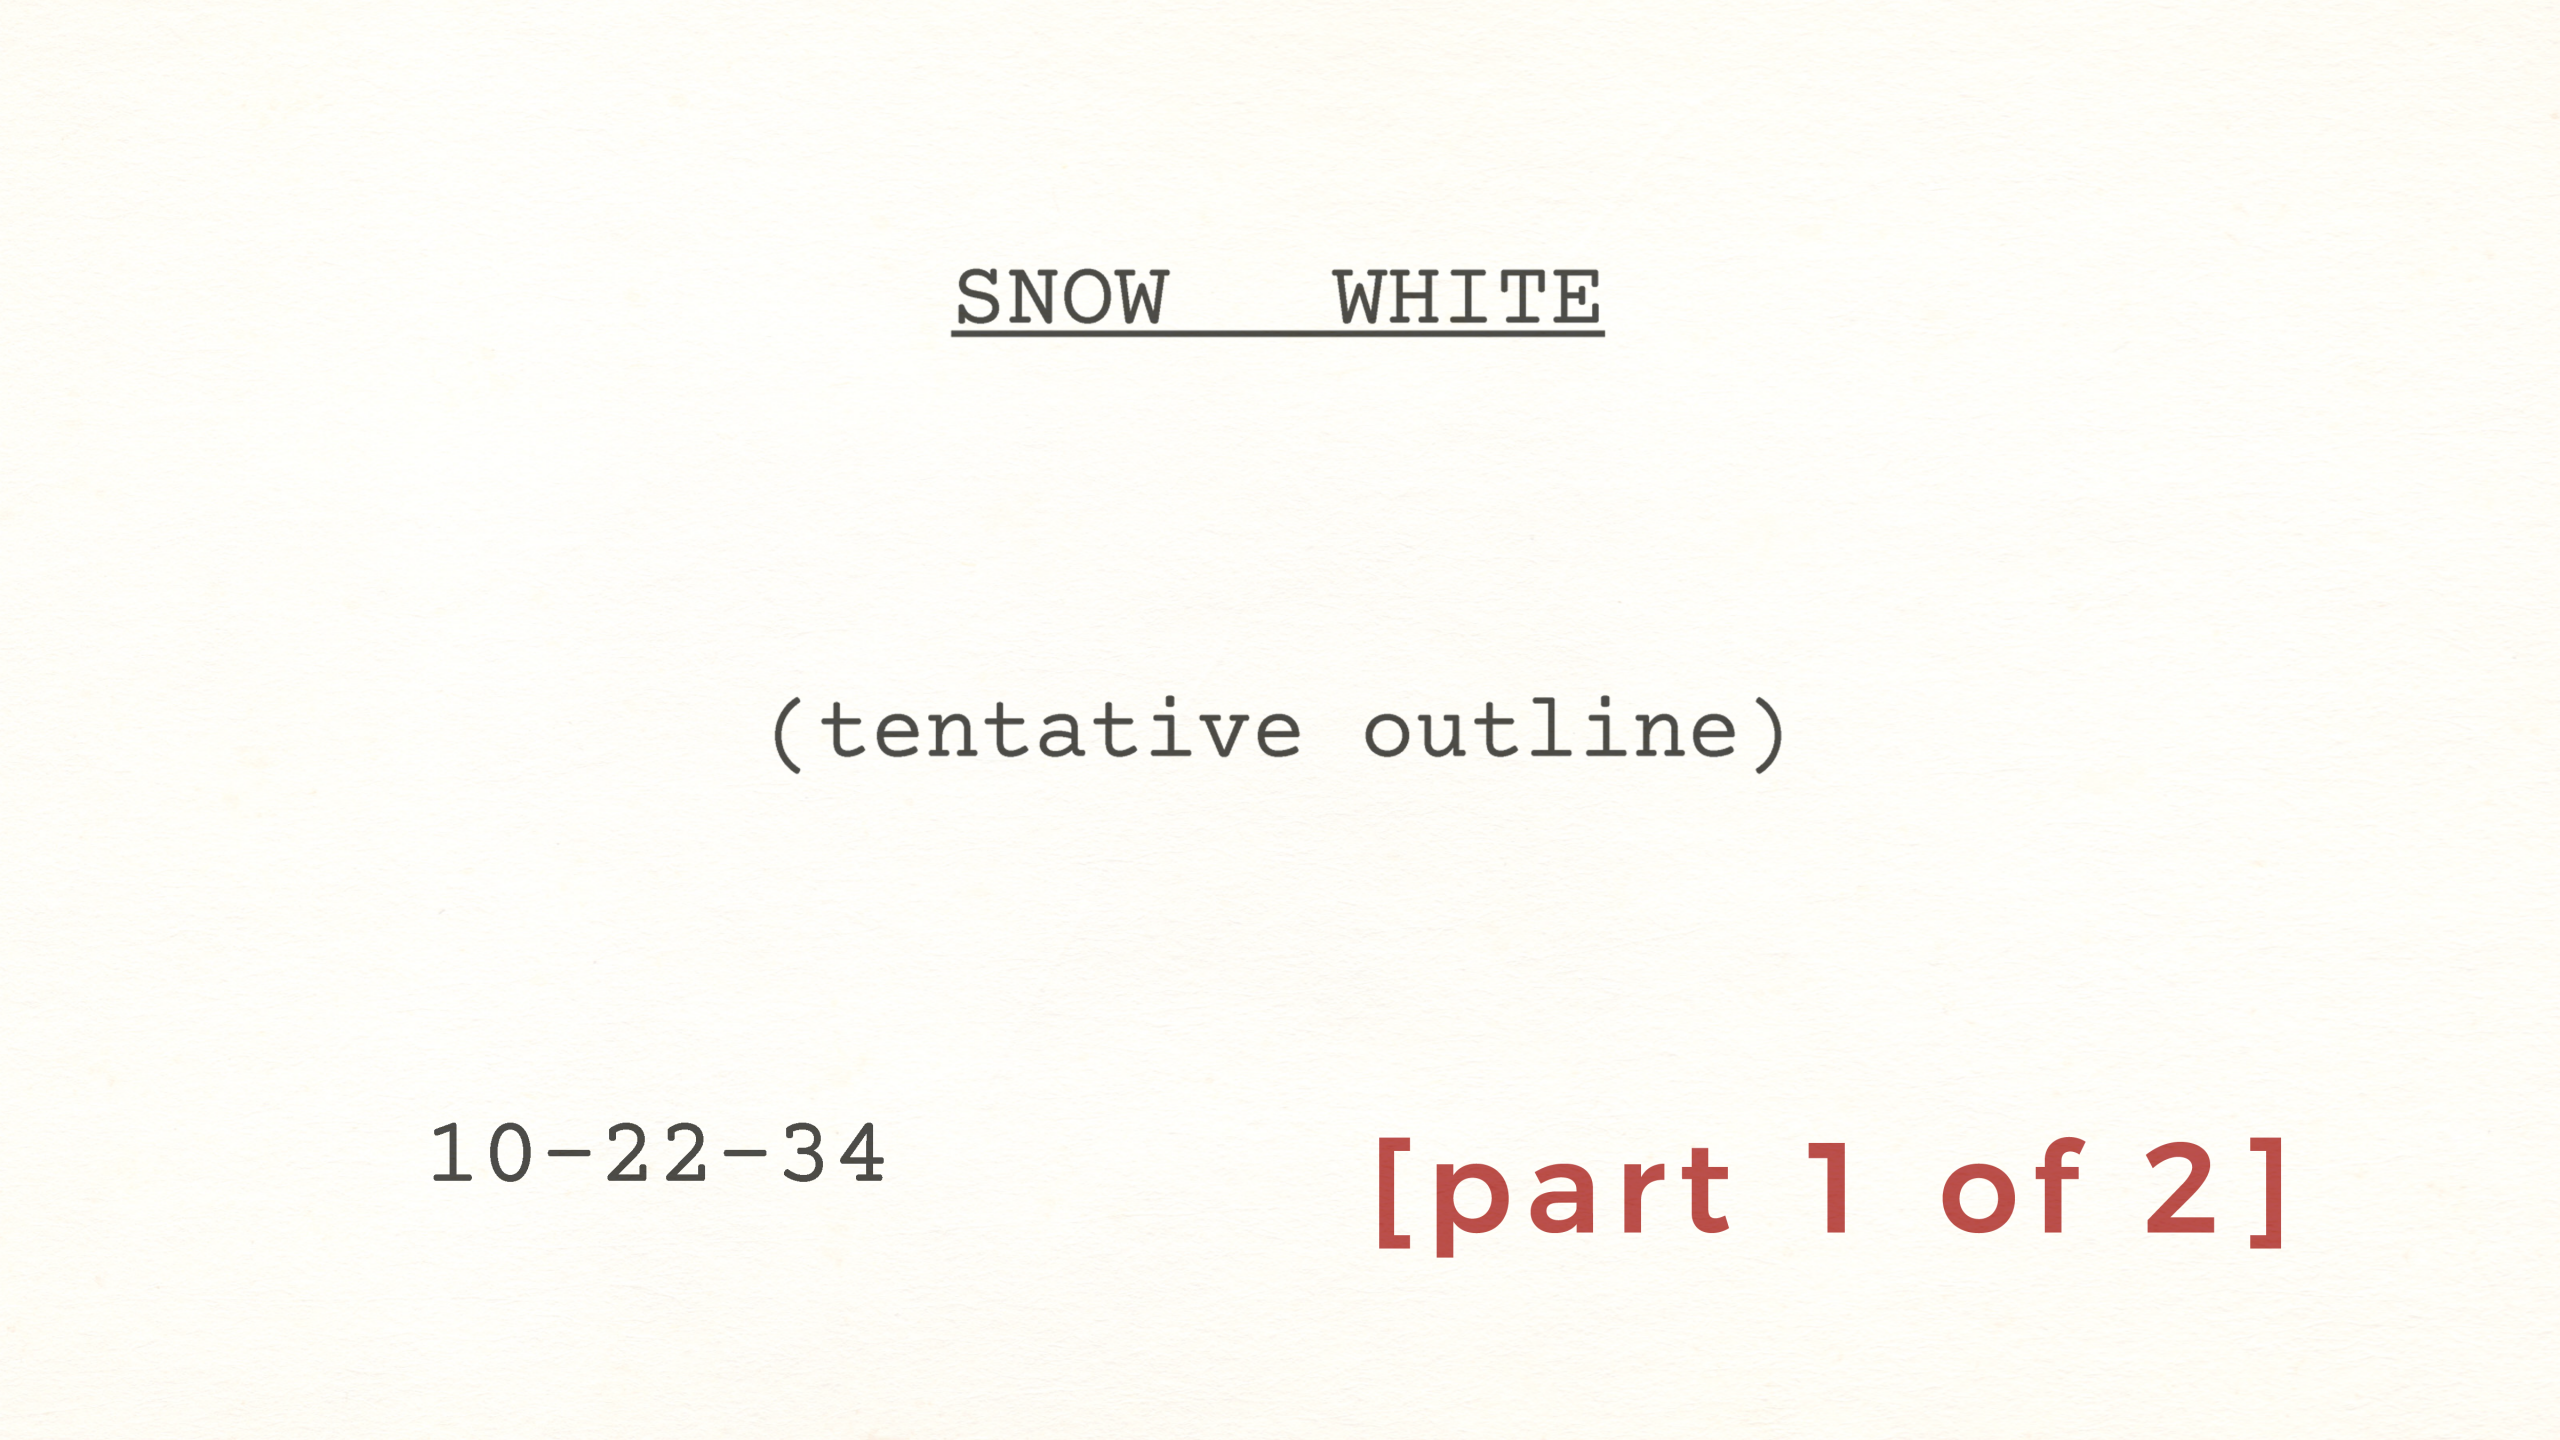 Walt Disney's SNOW WHITE Tentative Outline dated October 22, 1934 [Part 1 of 2]